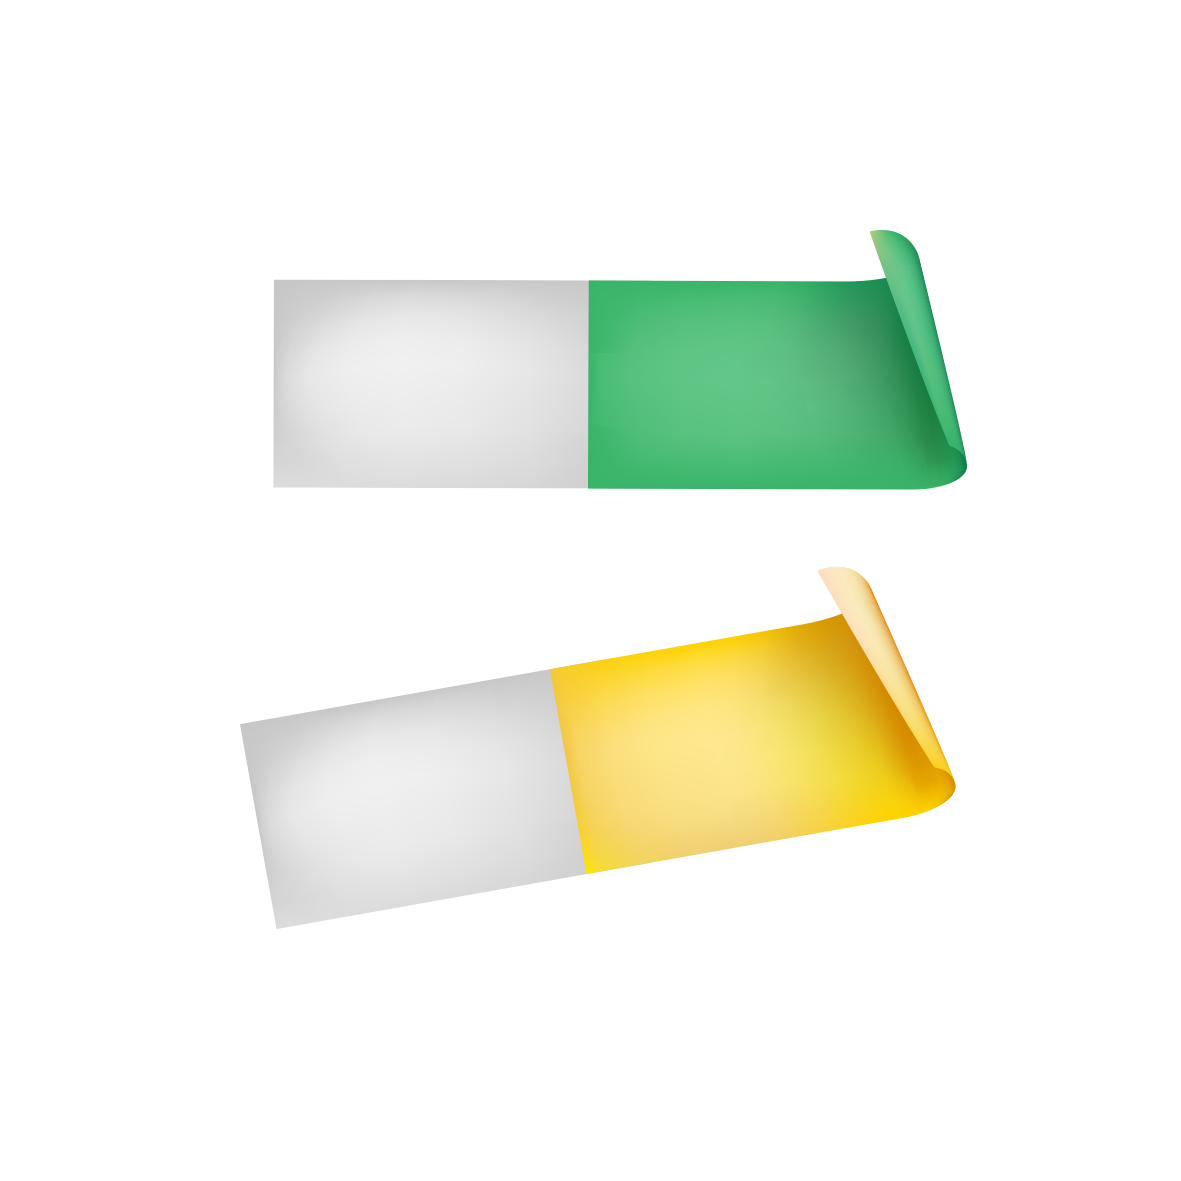 Paper sticker png. Post it note color